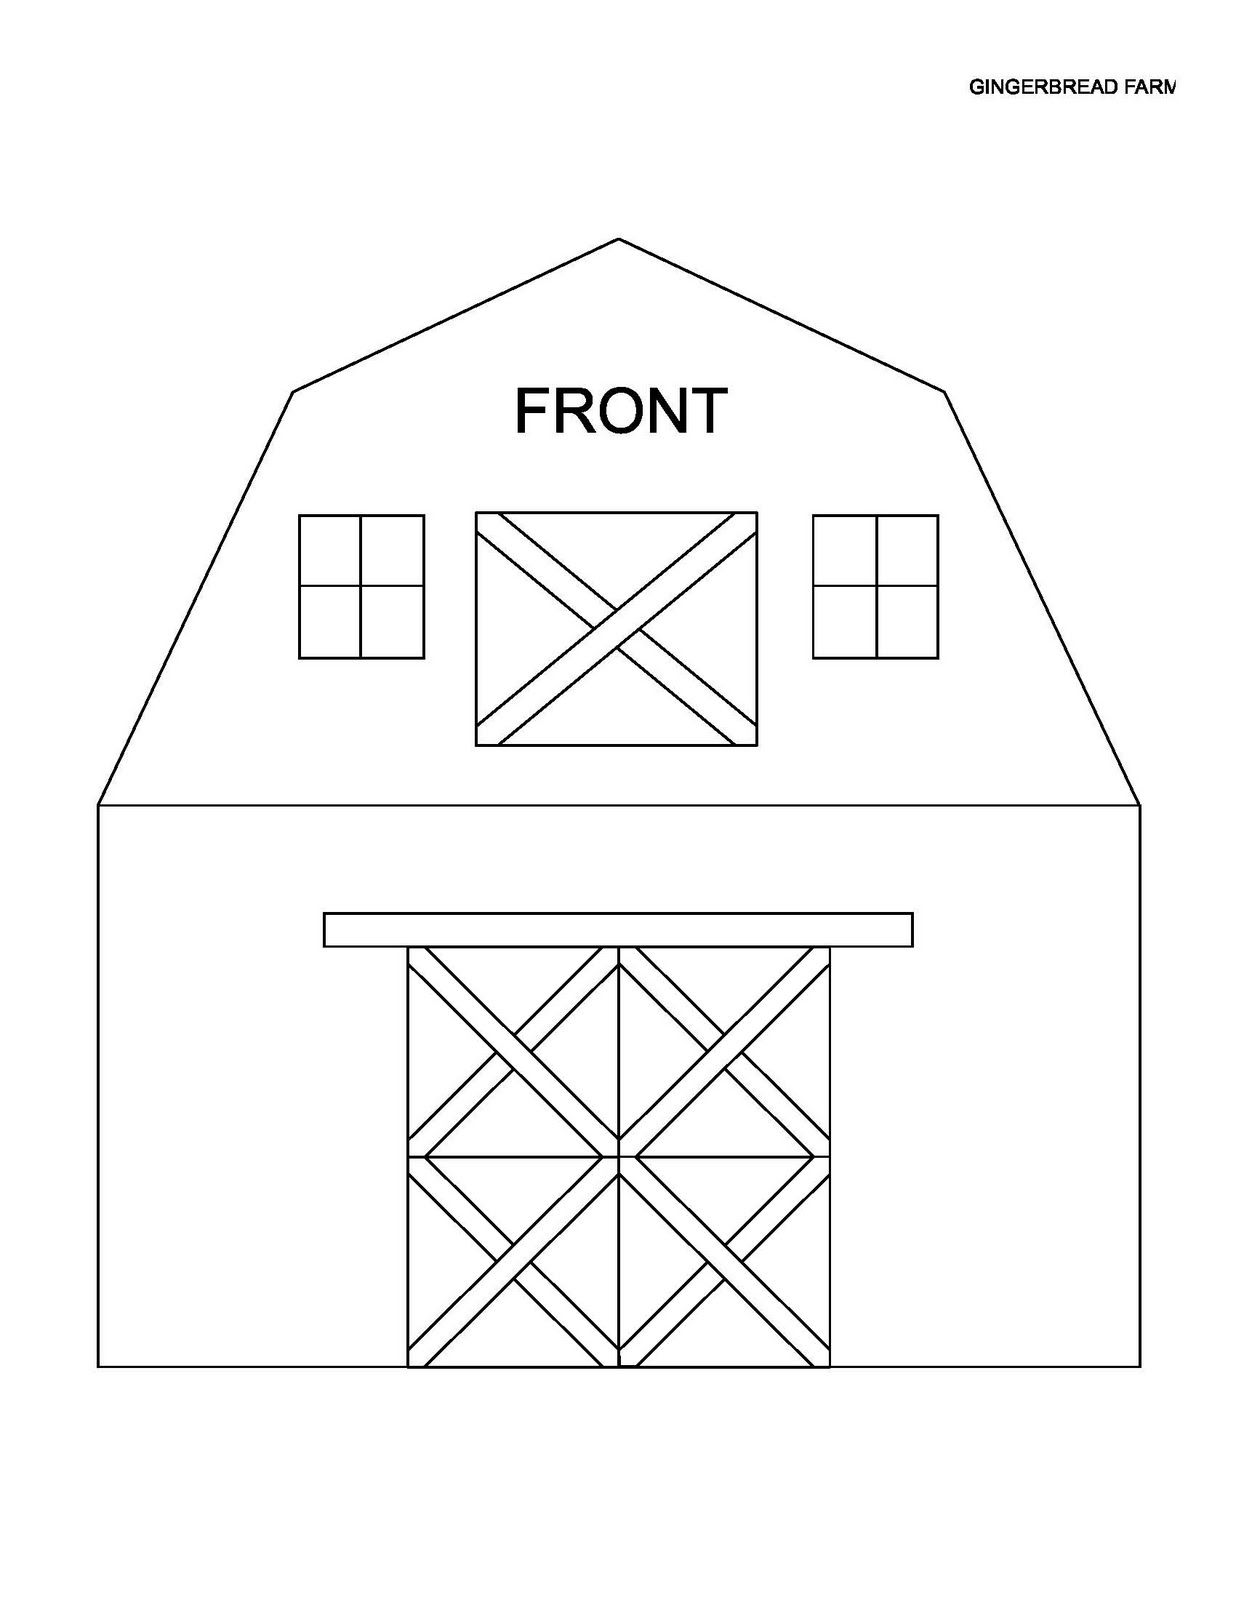 barn outline printable - photo #14